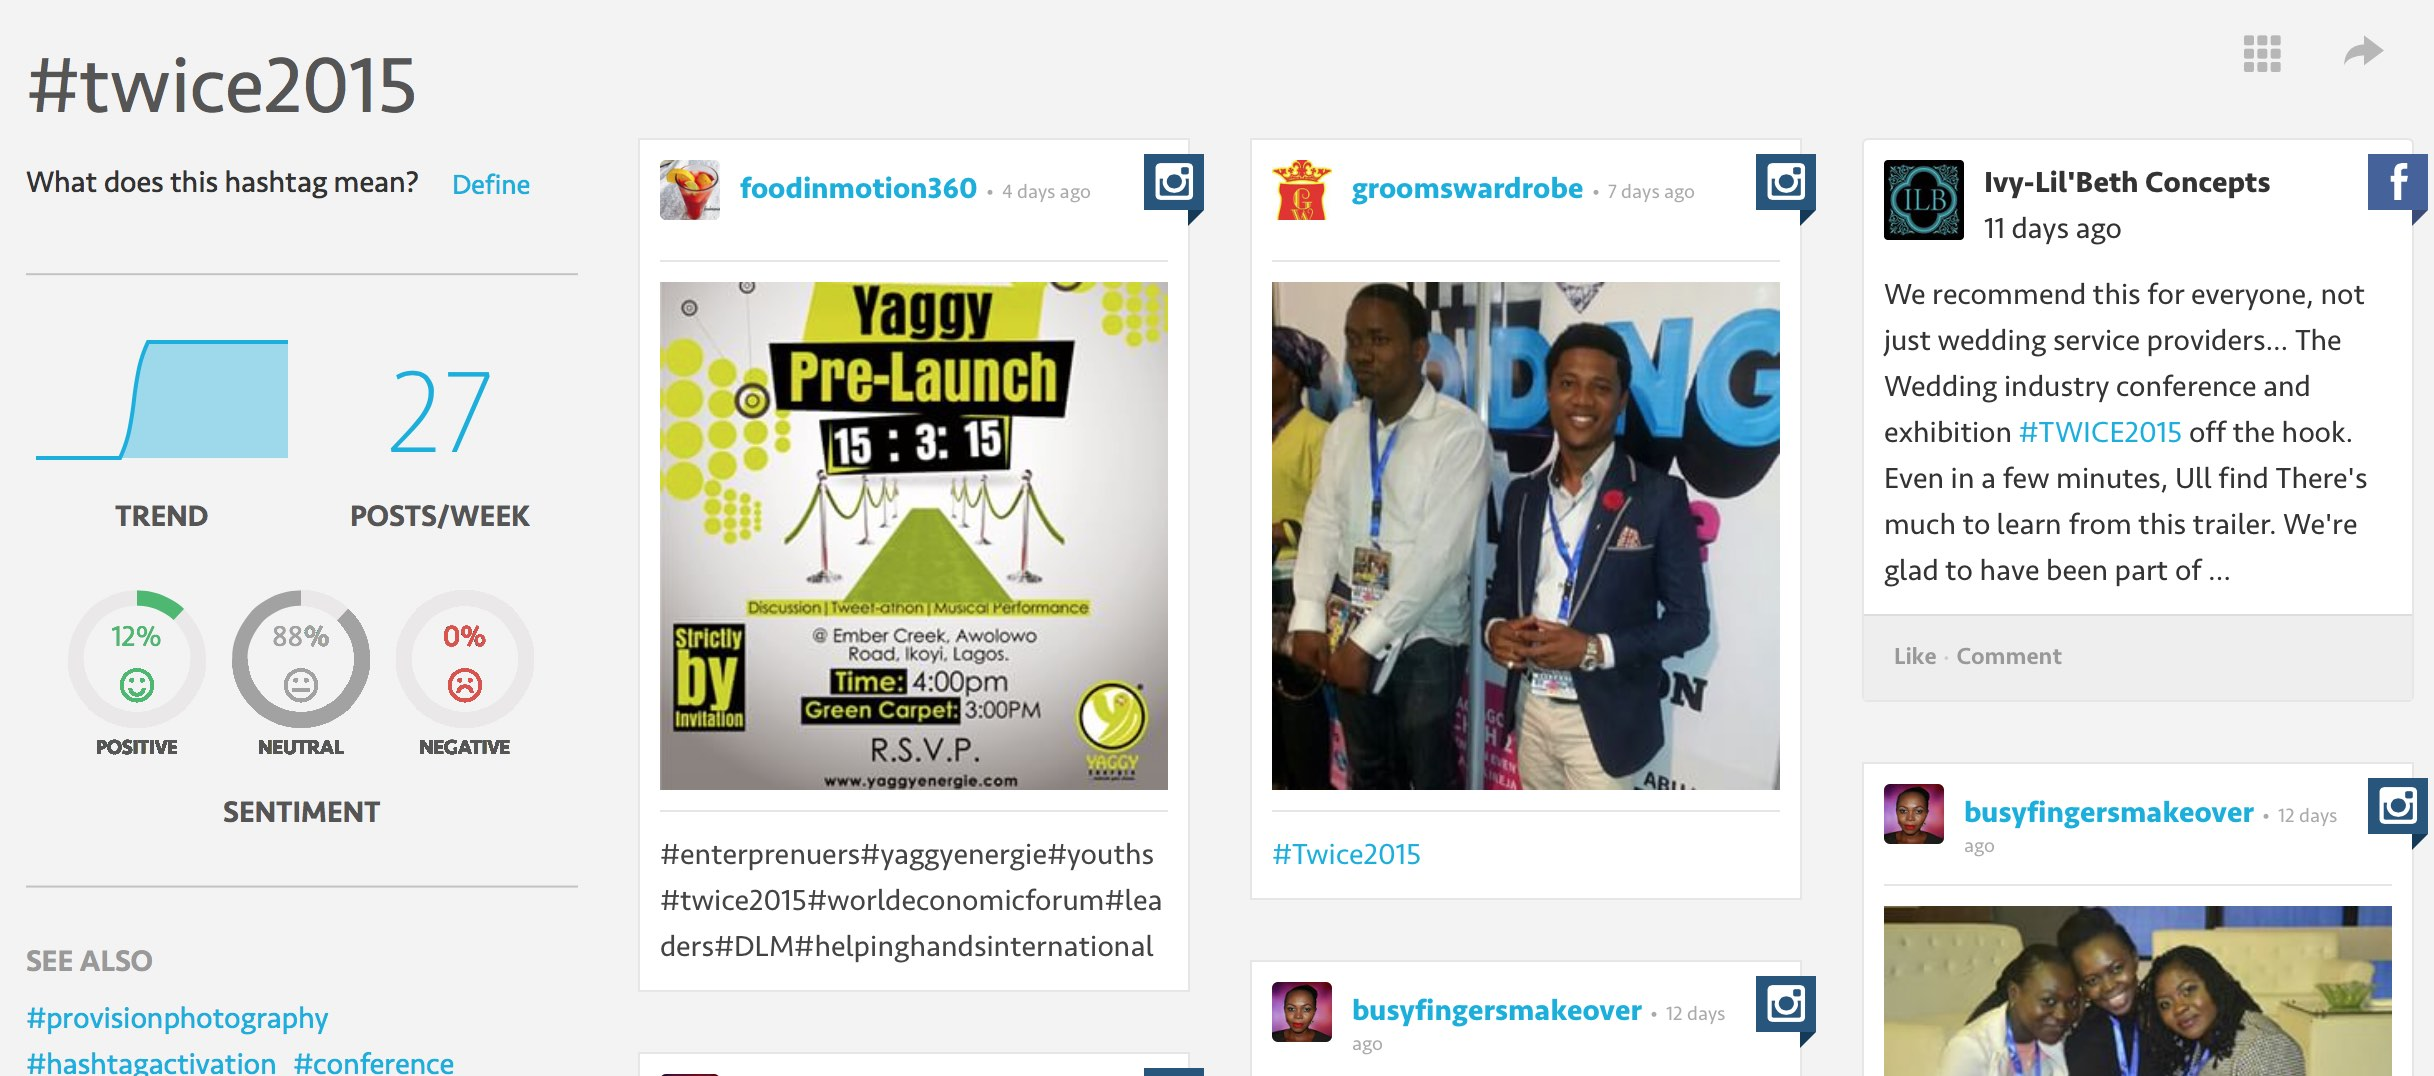 Hashtag Activation by PhotoGenic Photo Booth lagos Nigeria